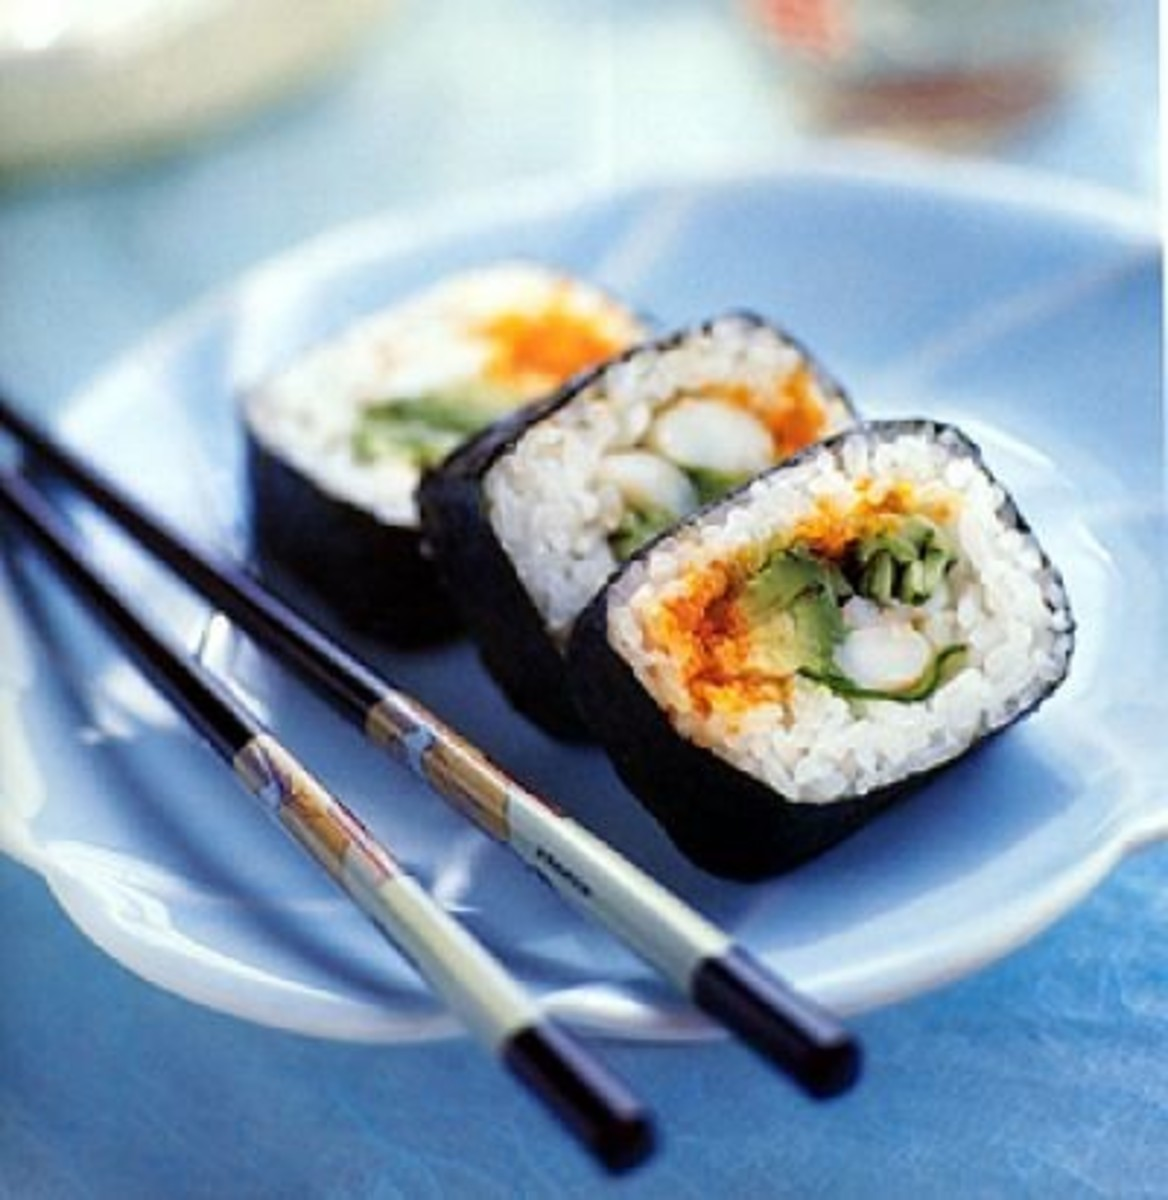 Delicious sushi made with nori seaweed